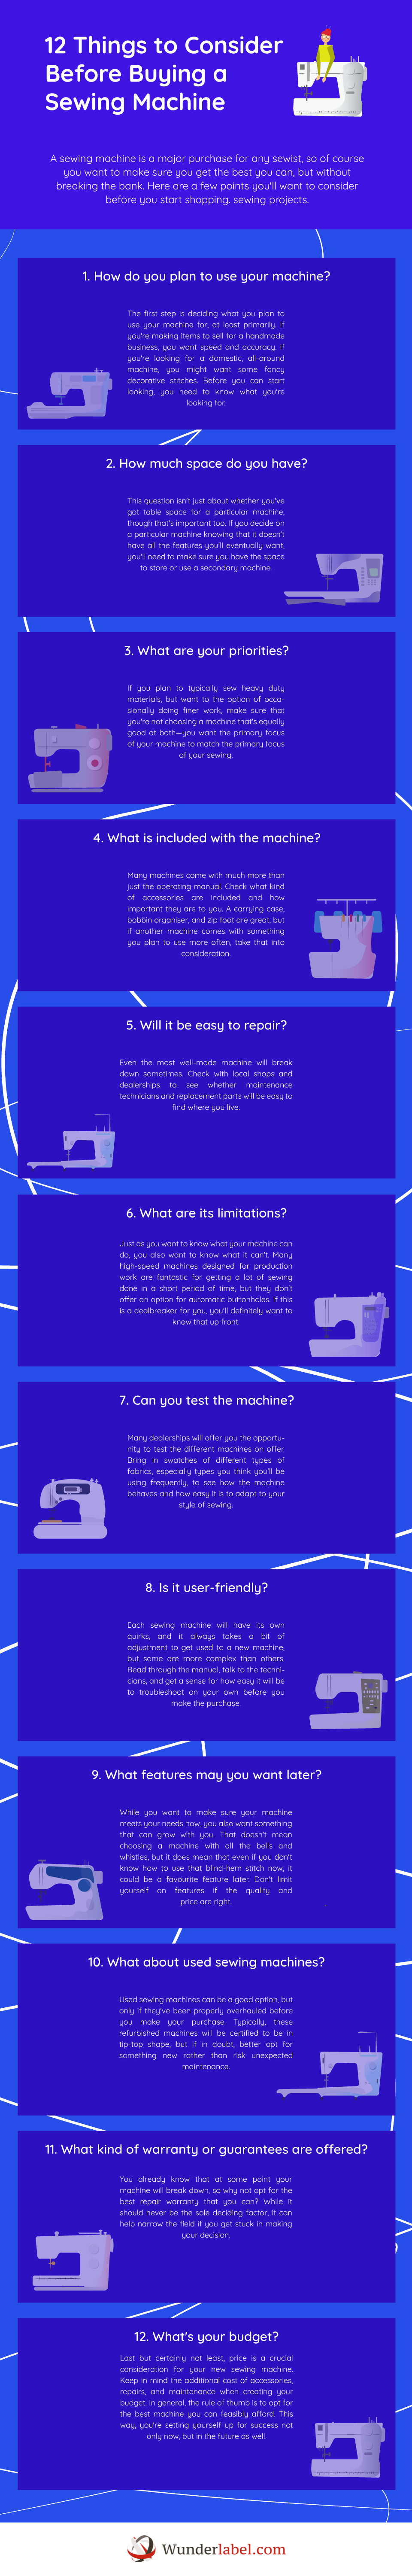 12-Things-to-Consider-Before-Buying-a-Sewing-Machine